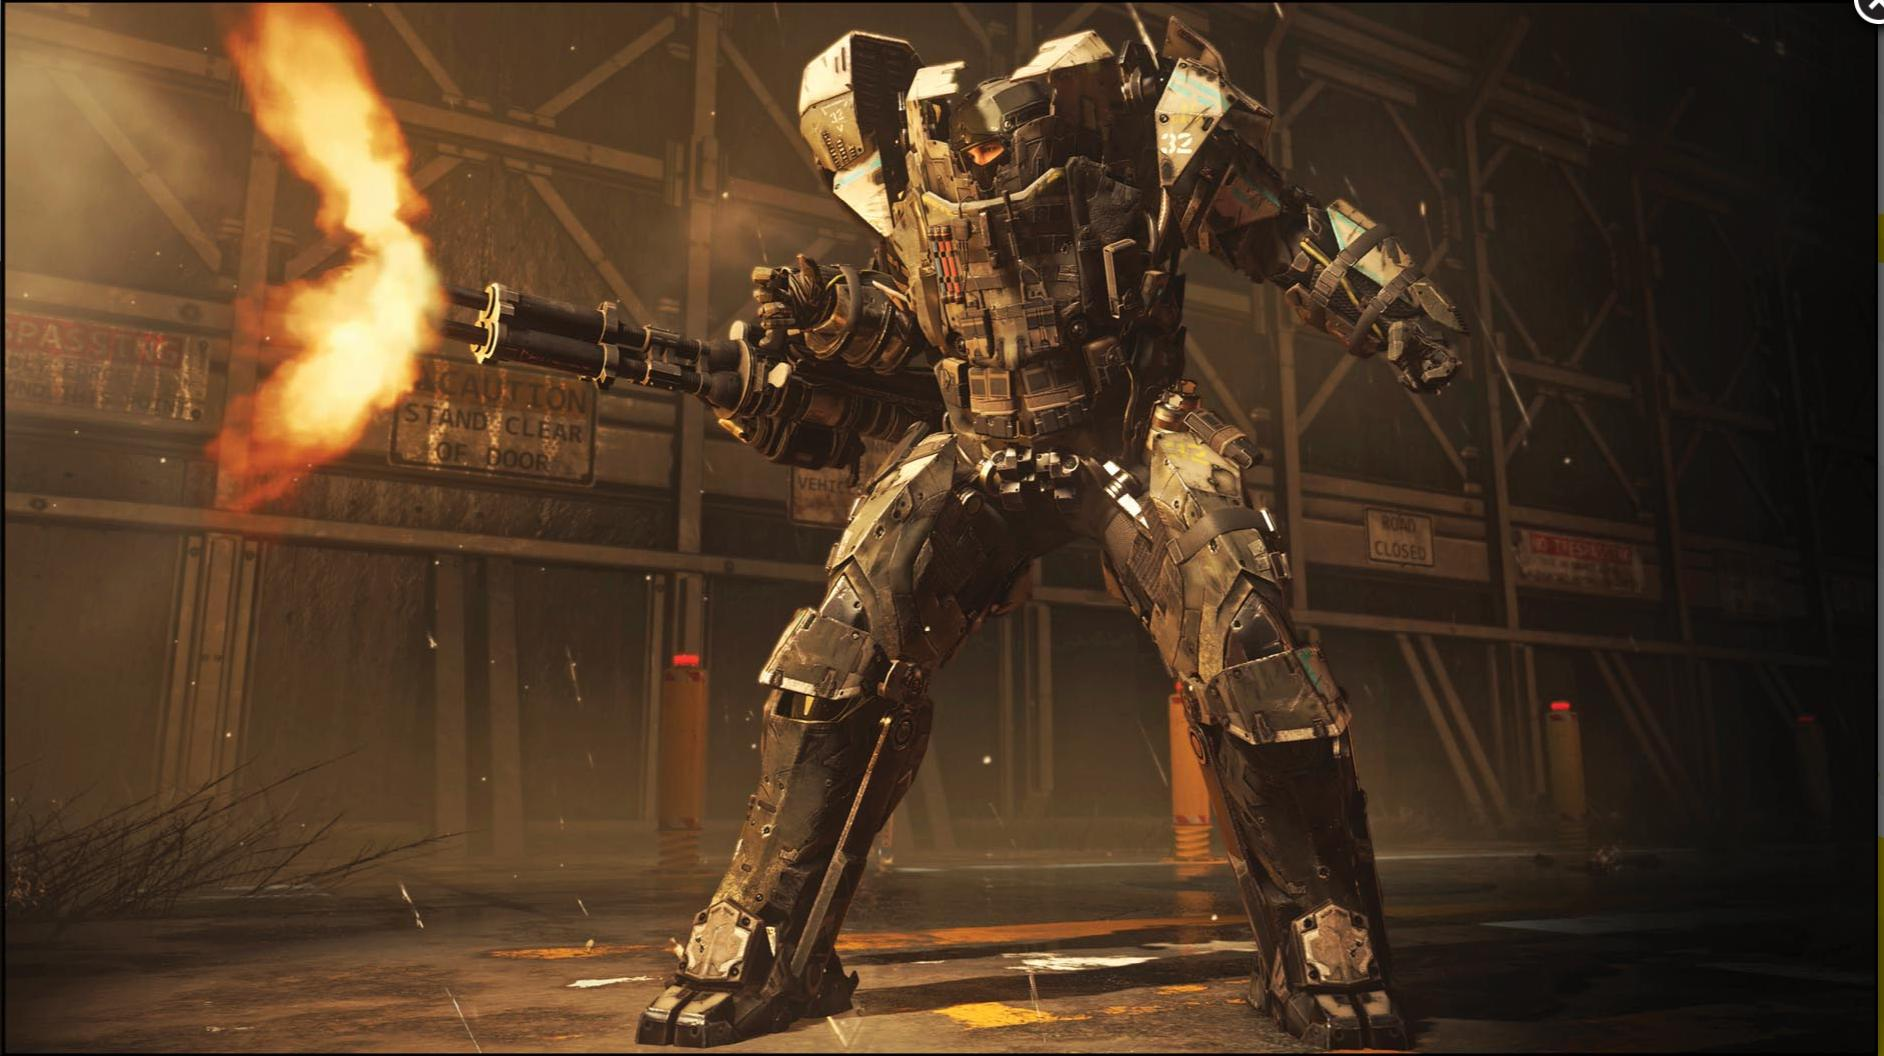 More Call Of Duty Advanced Warfare In Game Screens And Characters Artwork Leaked Looks Better